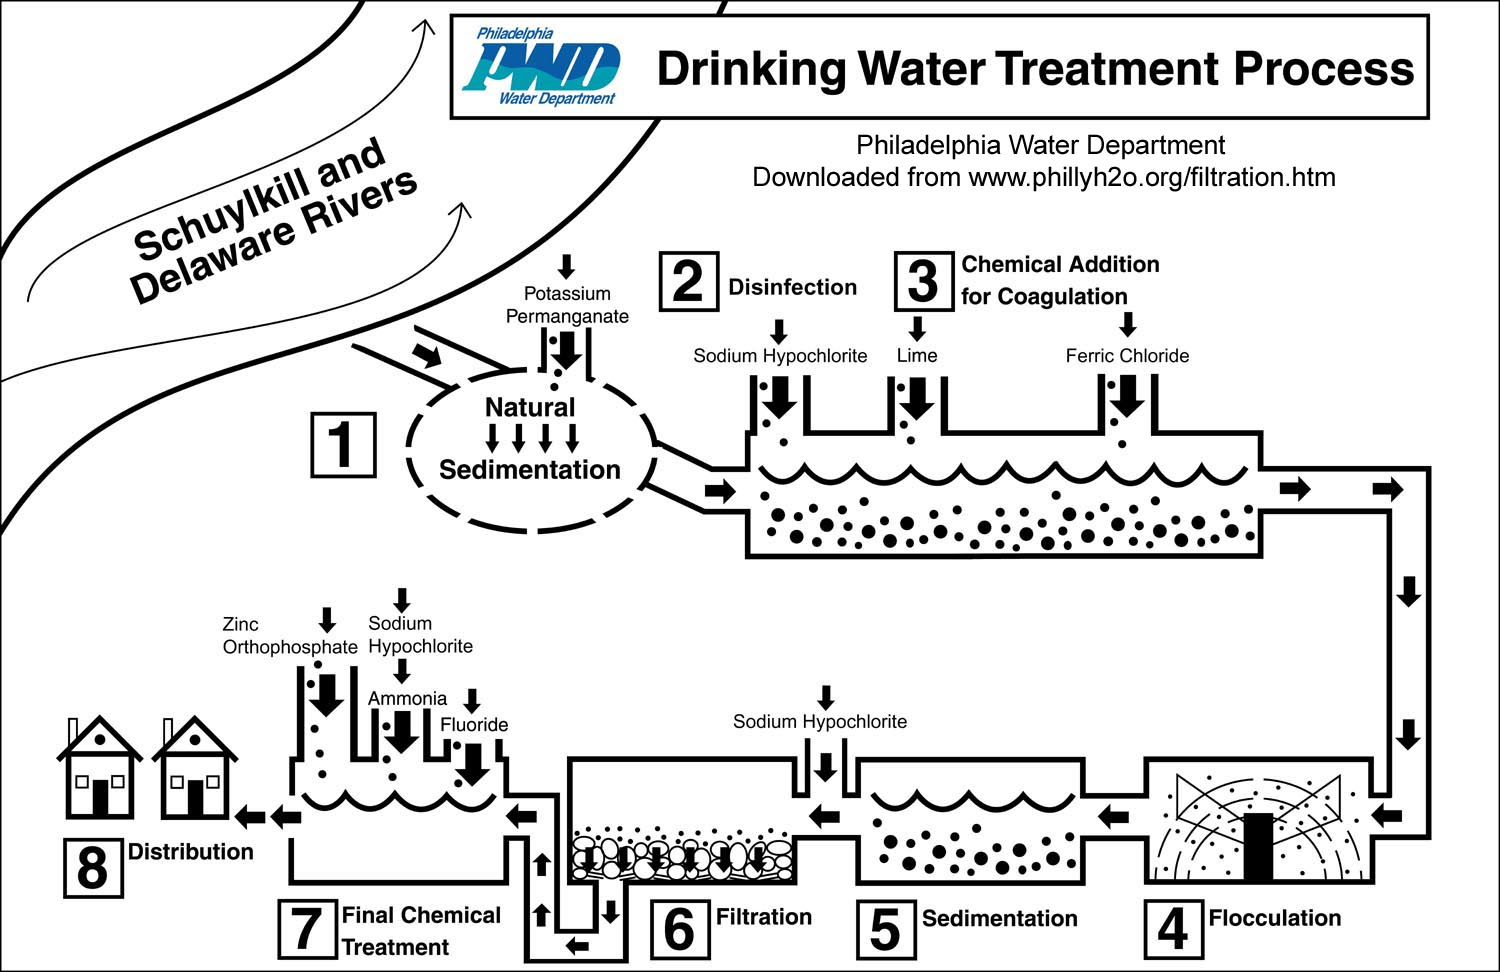 Philly H2o 100th Anniversay Of Water Filtration In